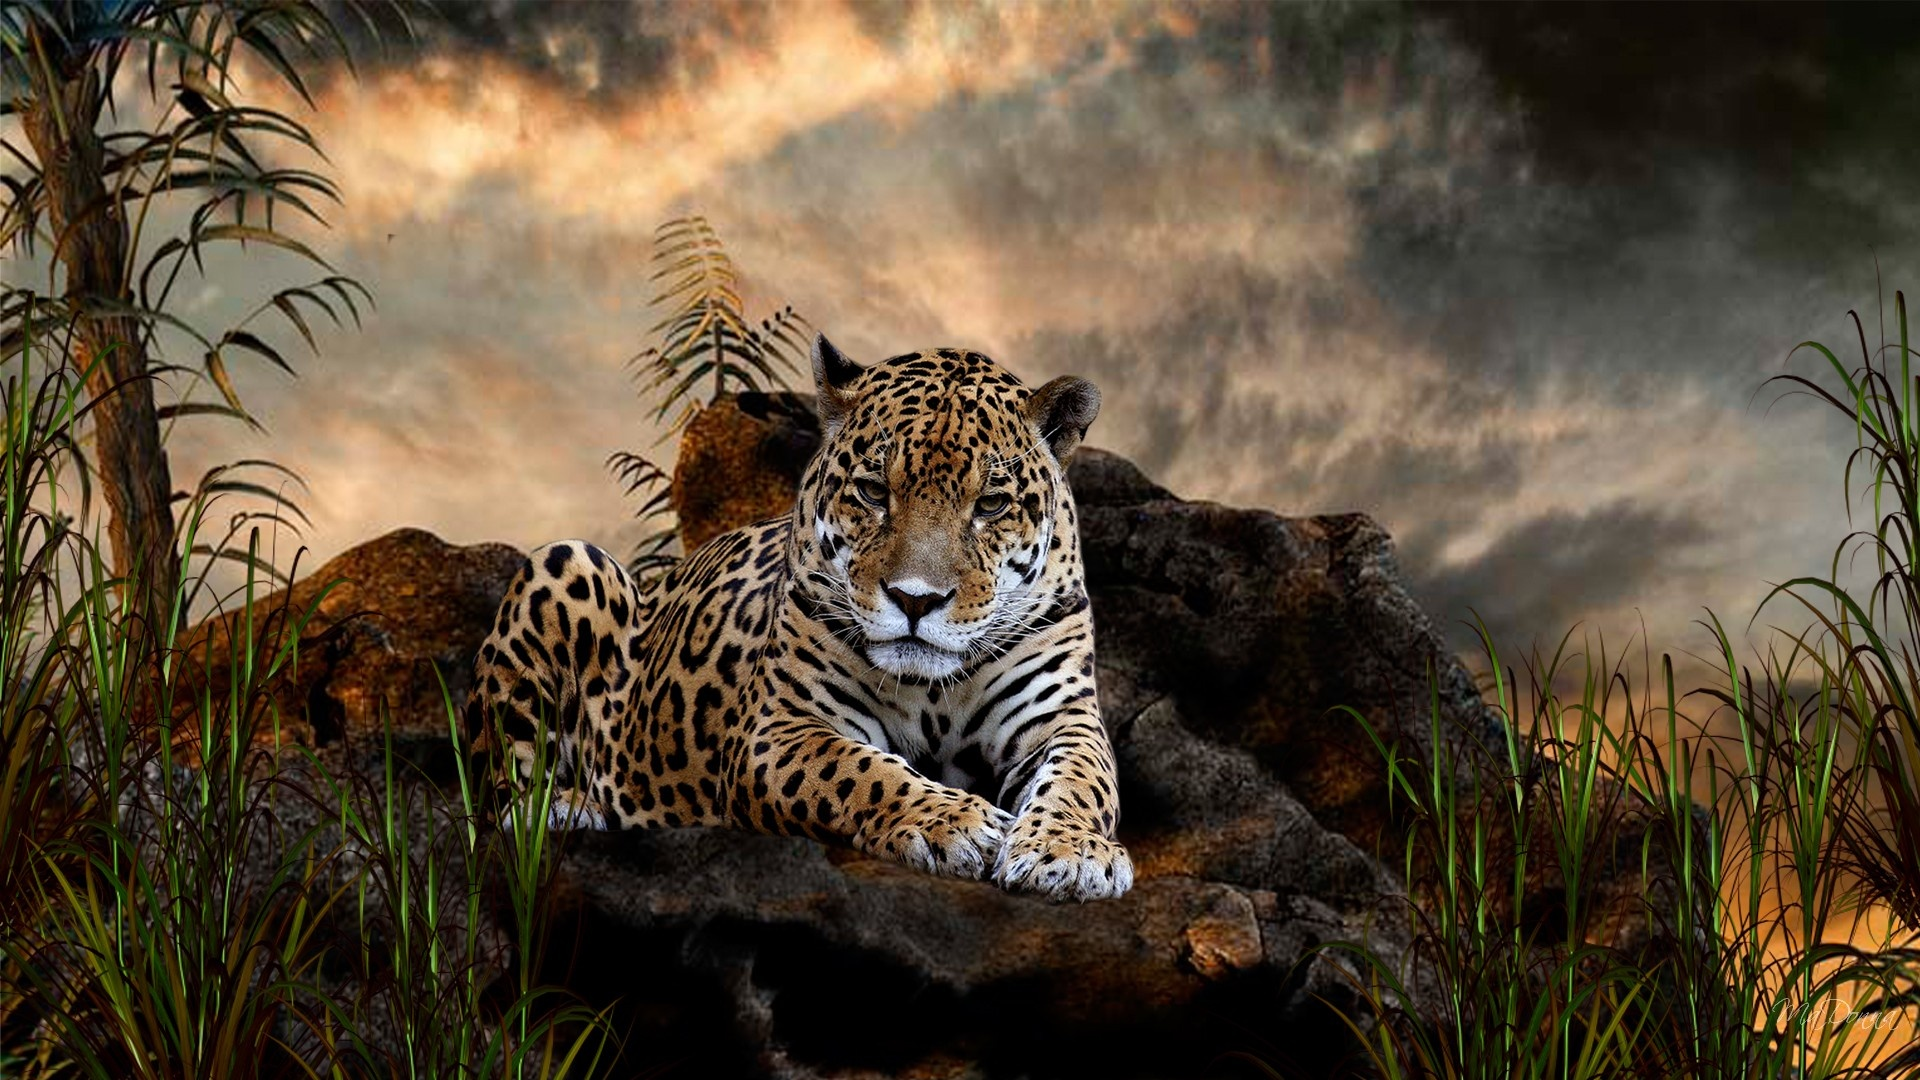 According-to-the-physical-features-jaguar-is-very-close-to-the-Panthers-and-tigers-but-jaguar-posse-wallpaper-wp5203794